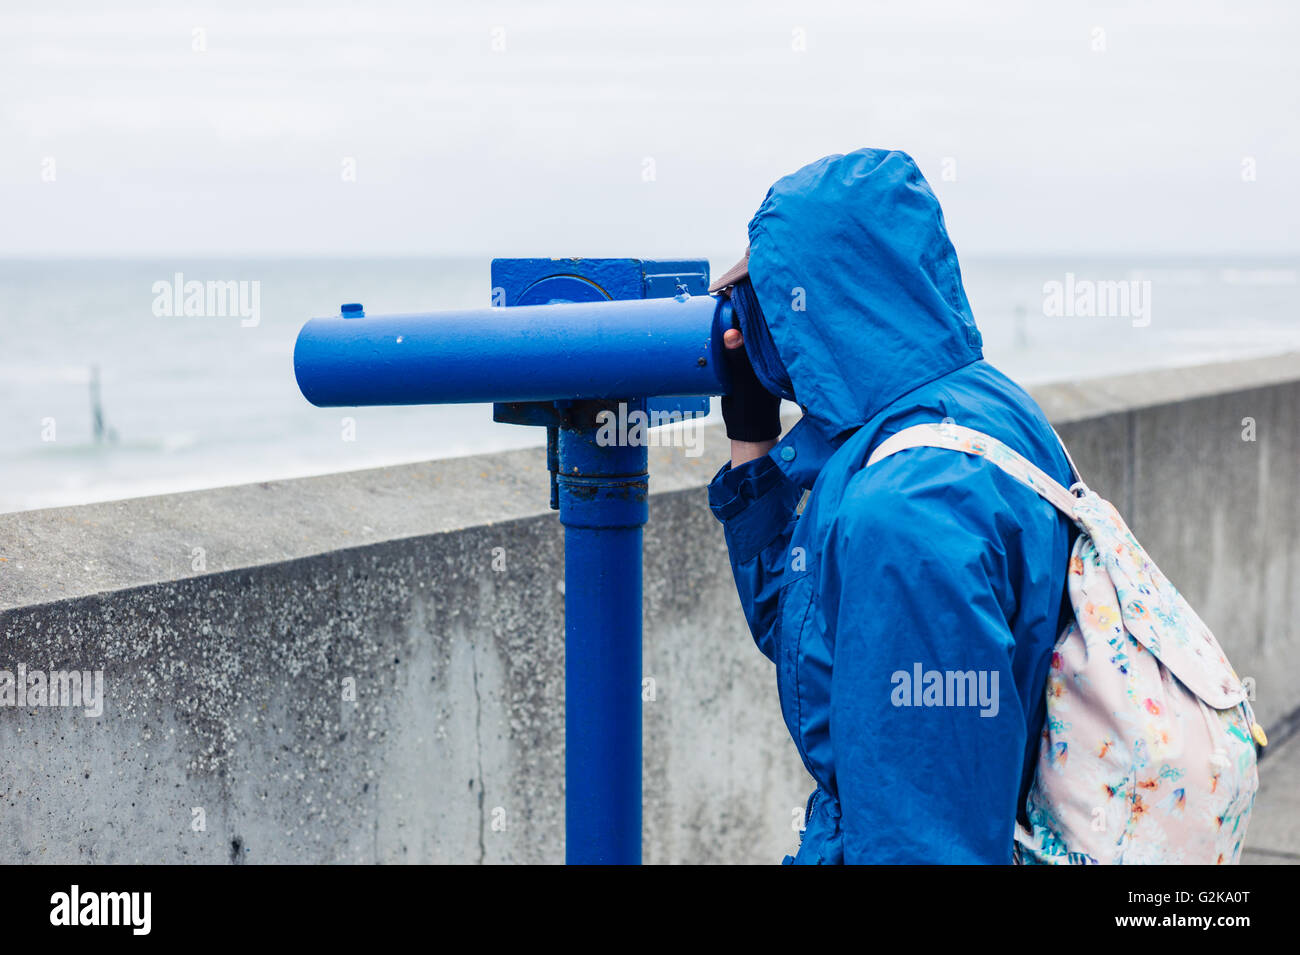 A person wearing a blue jacket and hood is using a telescope on the coast - Stock Image